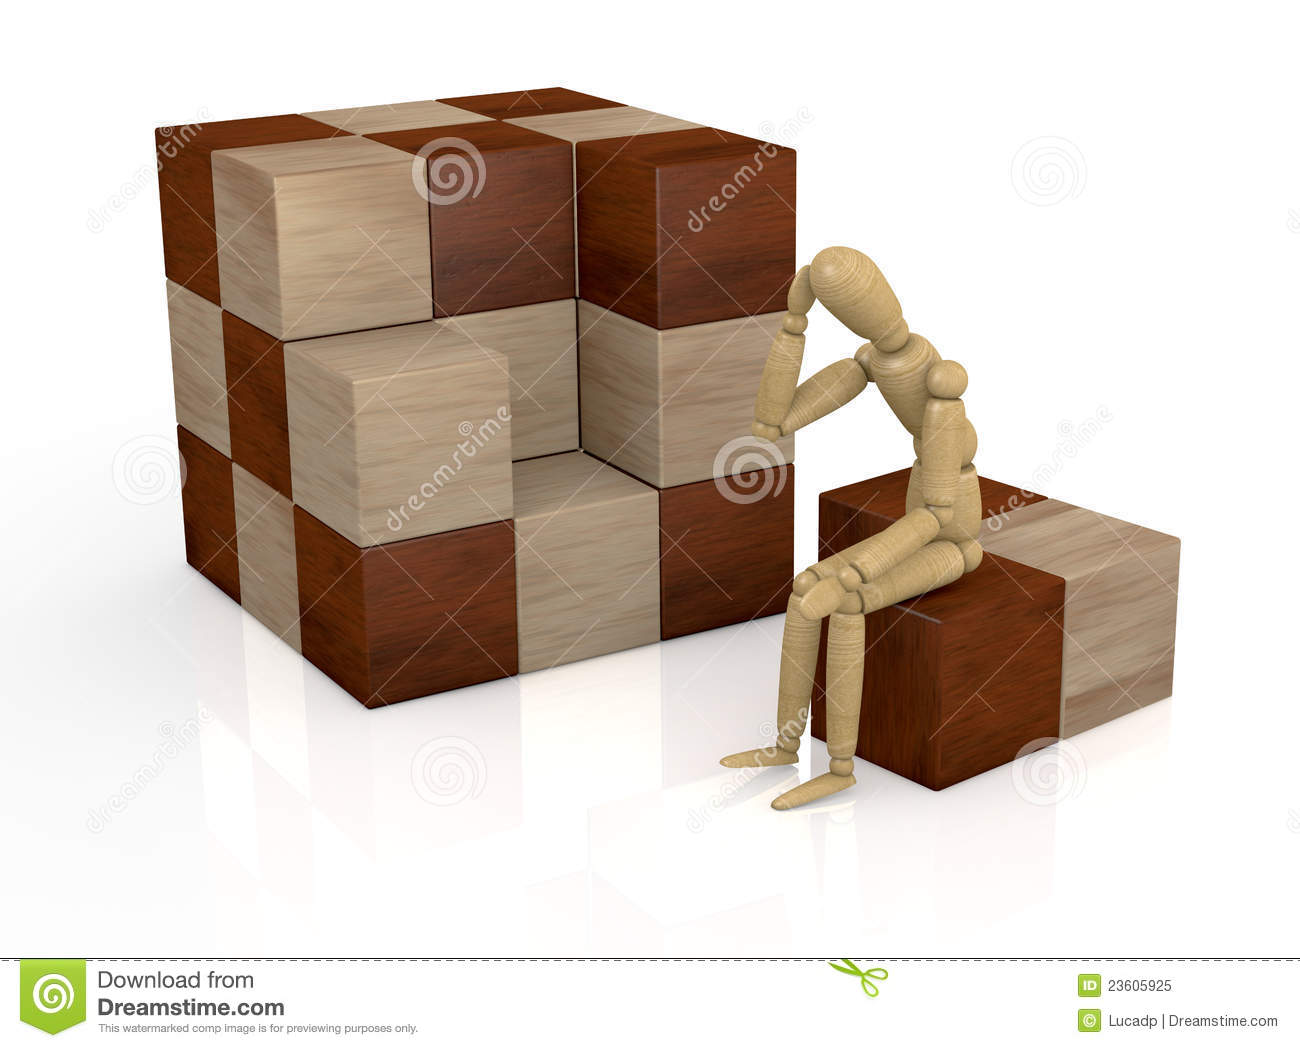 Wooden cube puzzle royalty free stock photo image 23605925 - Wooden cube house plans ...